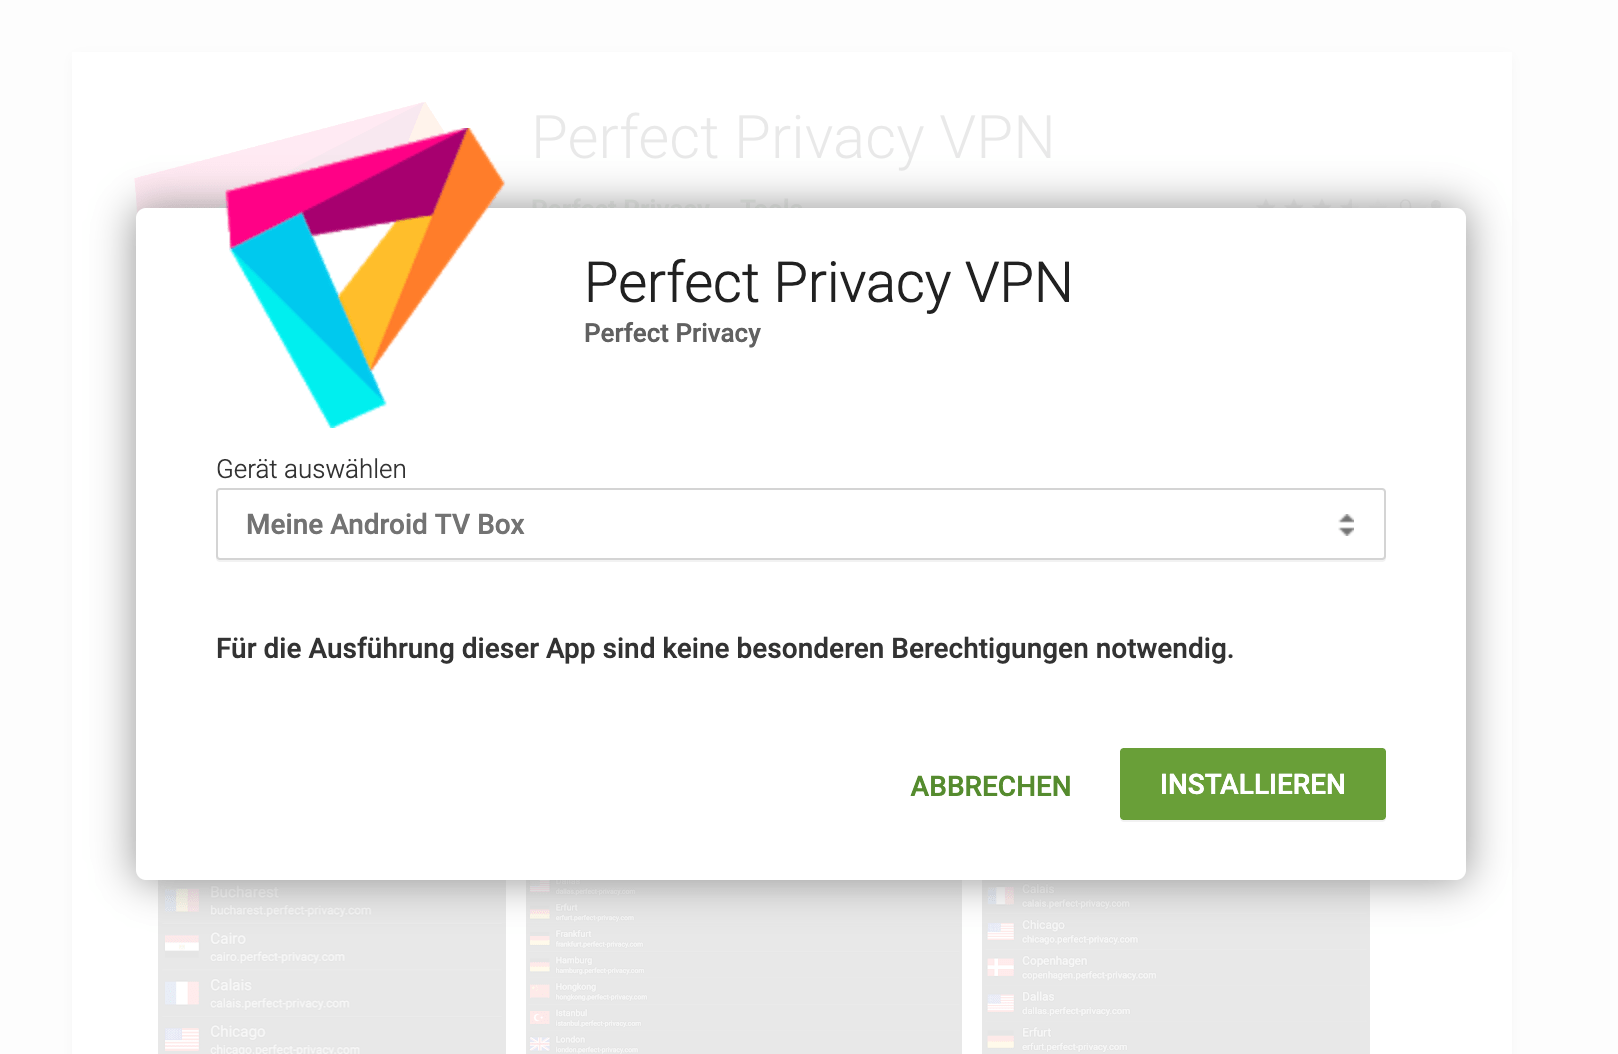 Perfect Privacy VPN App auf der Android TV Box installieren | Perfect Privacy VPN auf einer Android TV Box (IPsec/IKEv2)